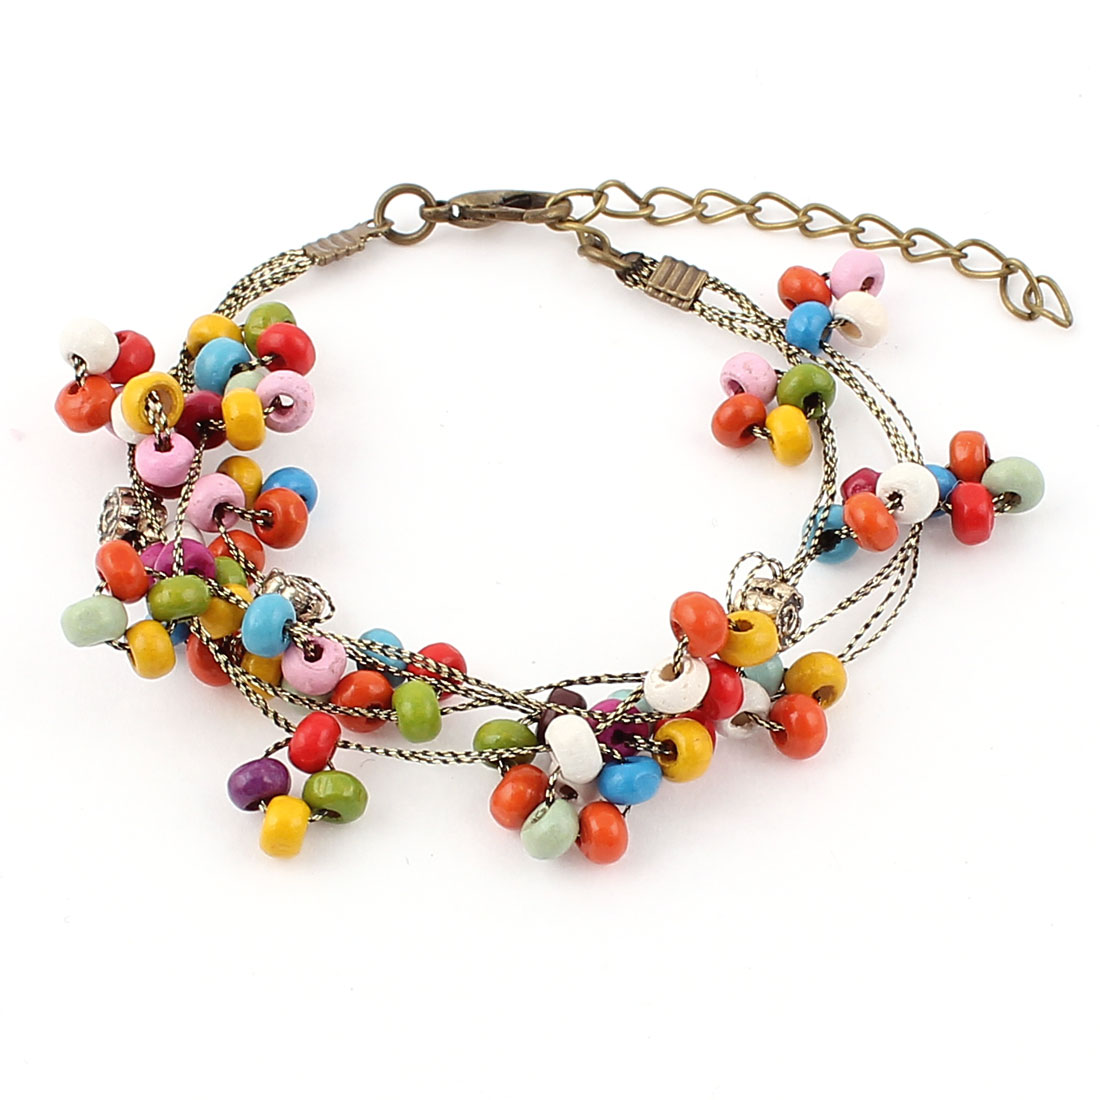 Women Lobster Clasp Beads Beaded Adjustable Wrist Chain Bangle Bracelet Multicolor